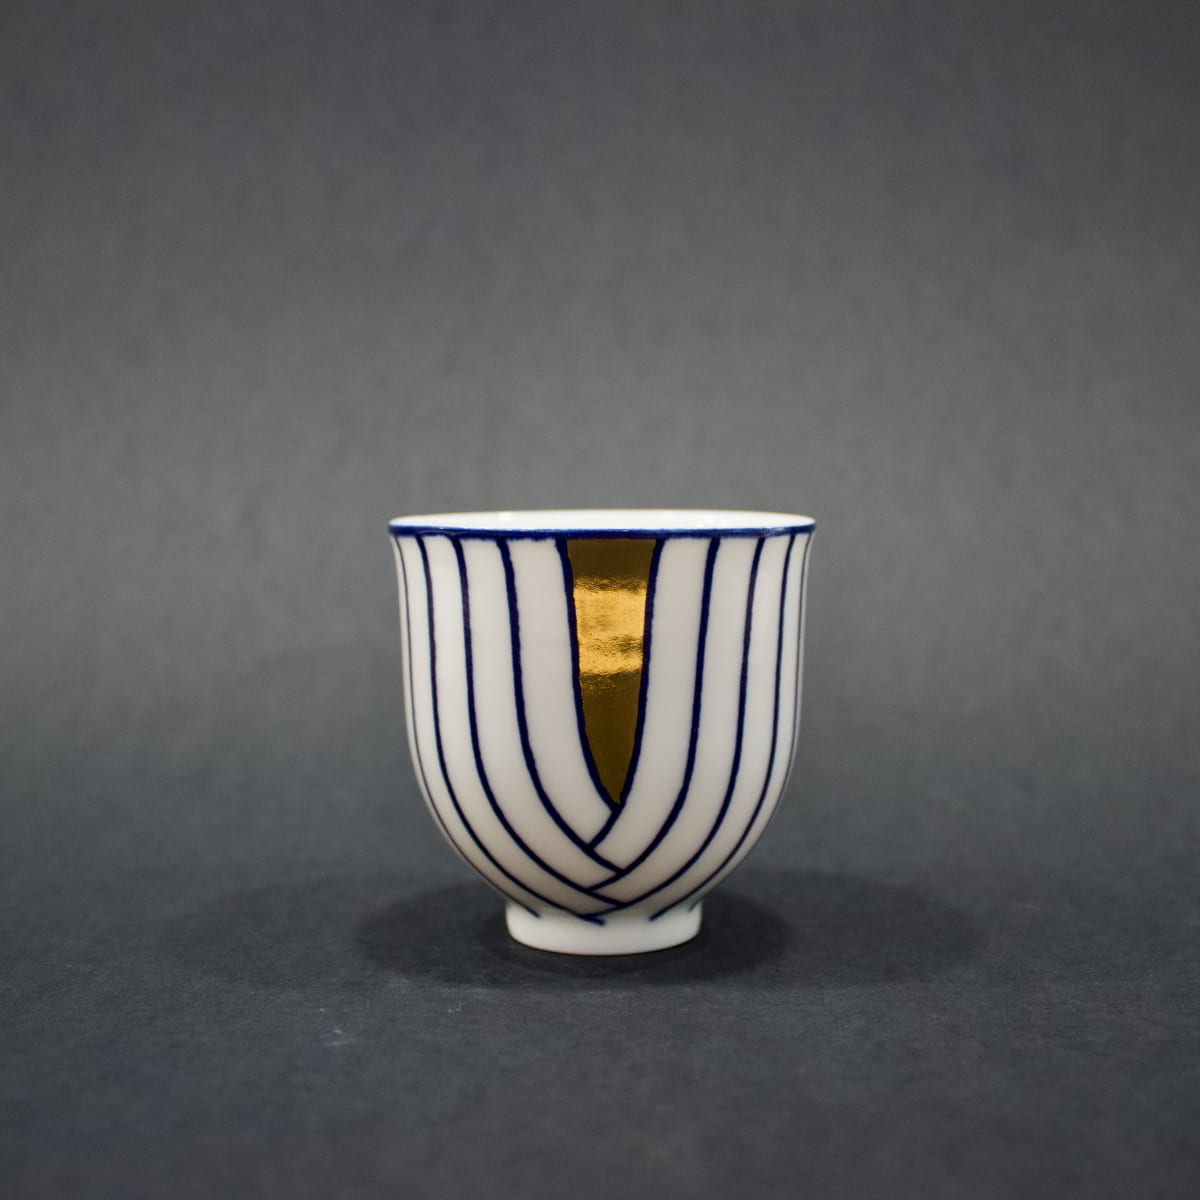 Rhian Malin Layered Lines Cup, 2019 Porcelain 7 x 7 x 7 cm 2 3/4 x 2 3/4 x 2 3/4 in